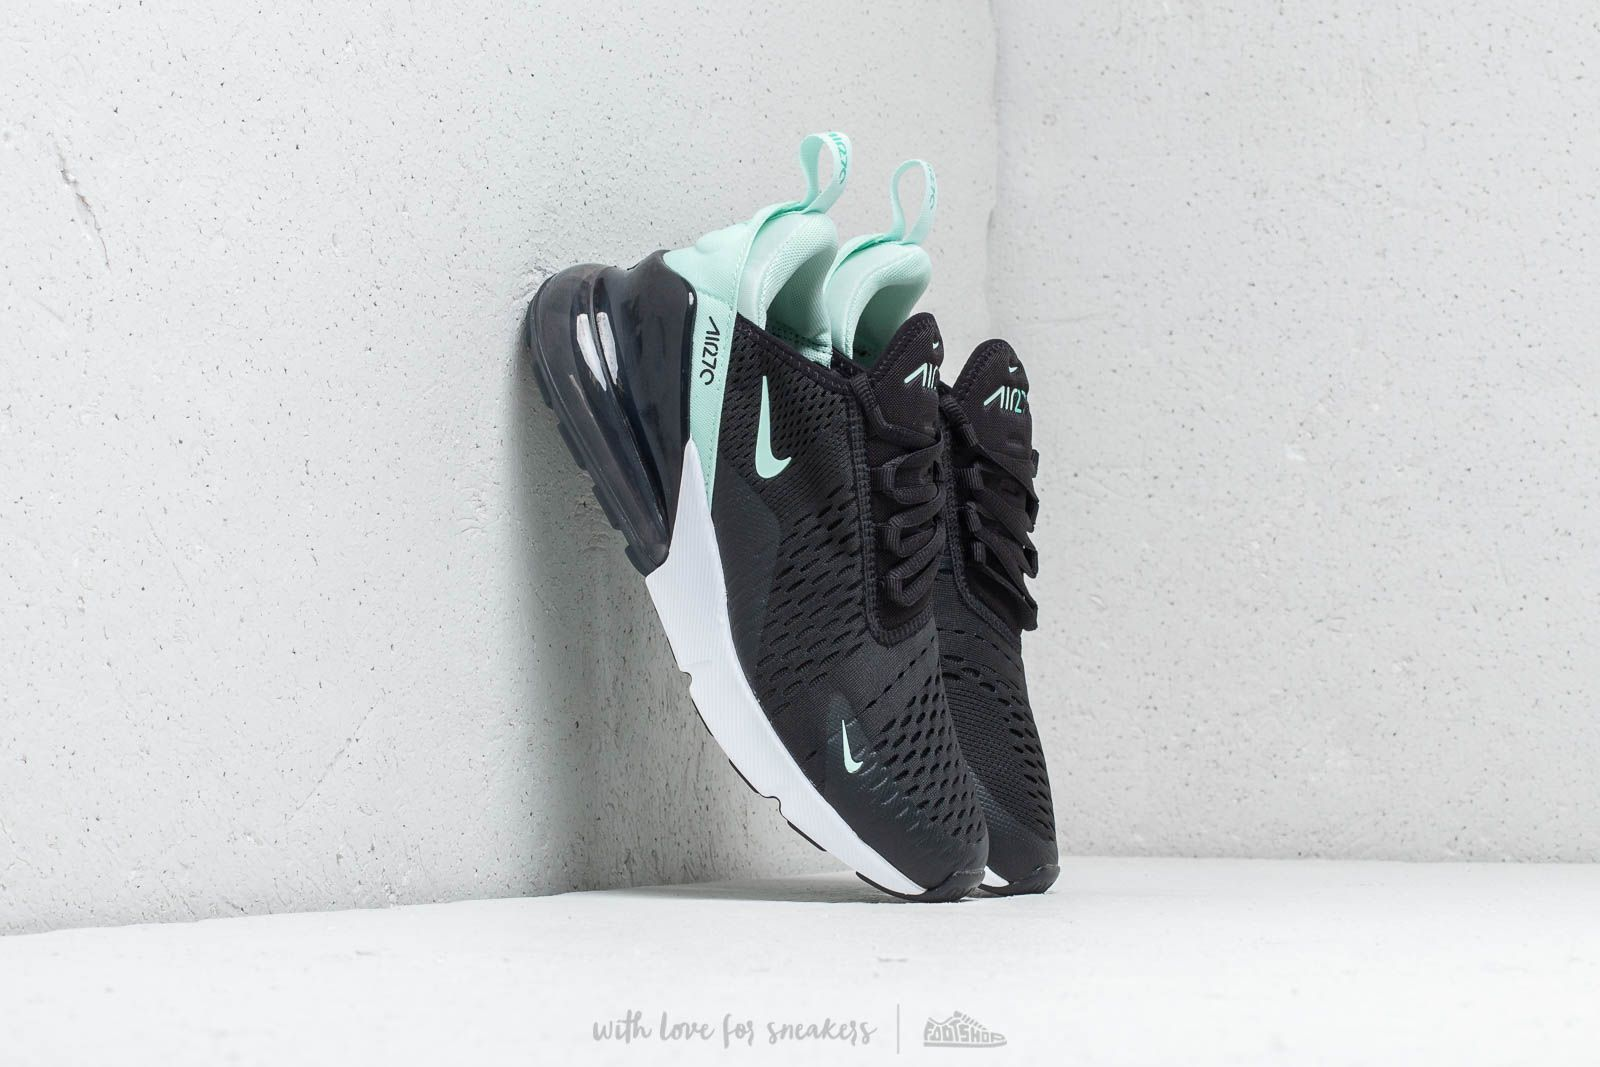 nike 270 black and turquoise